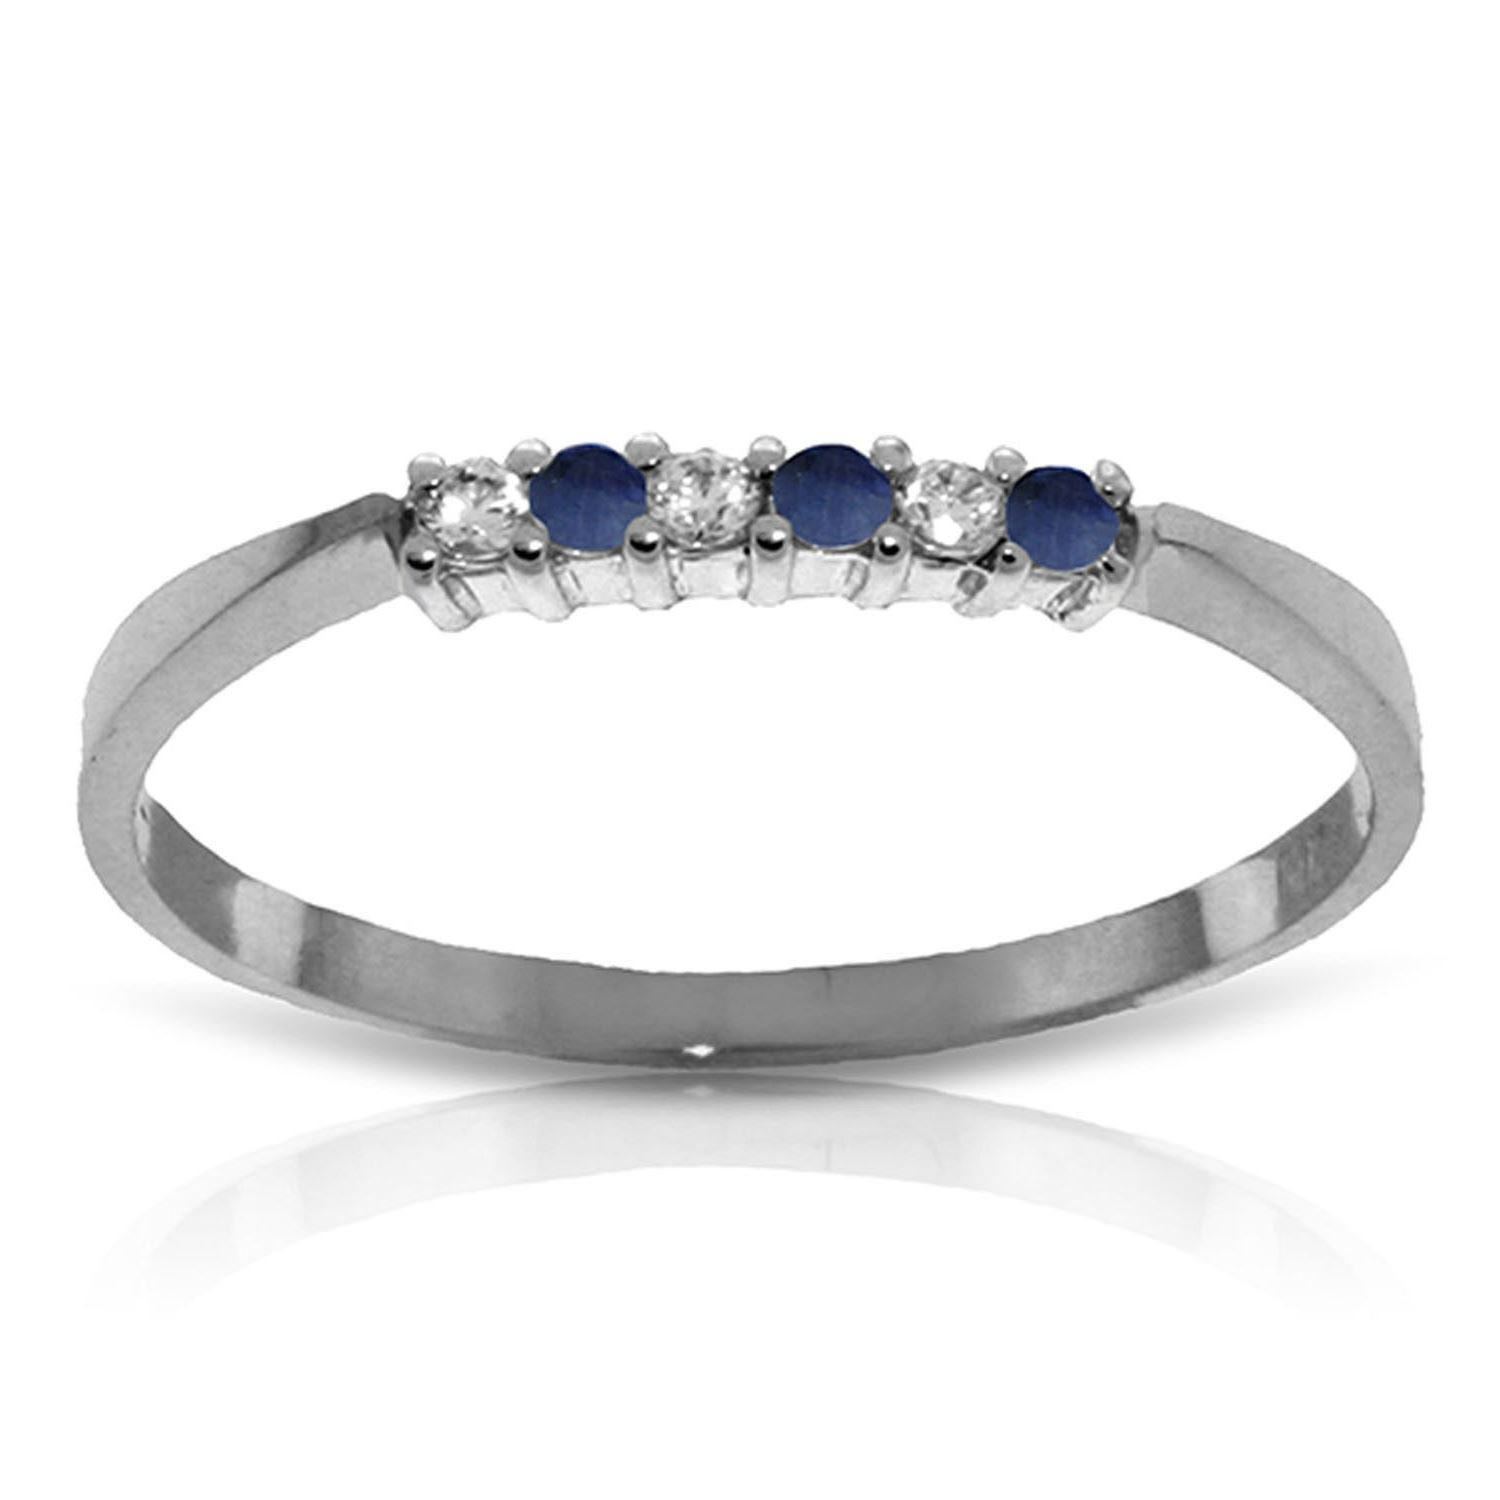 Sapphire Diamond Eternal Love Delicate Ring 14K Solid White Gold 2818-W